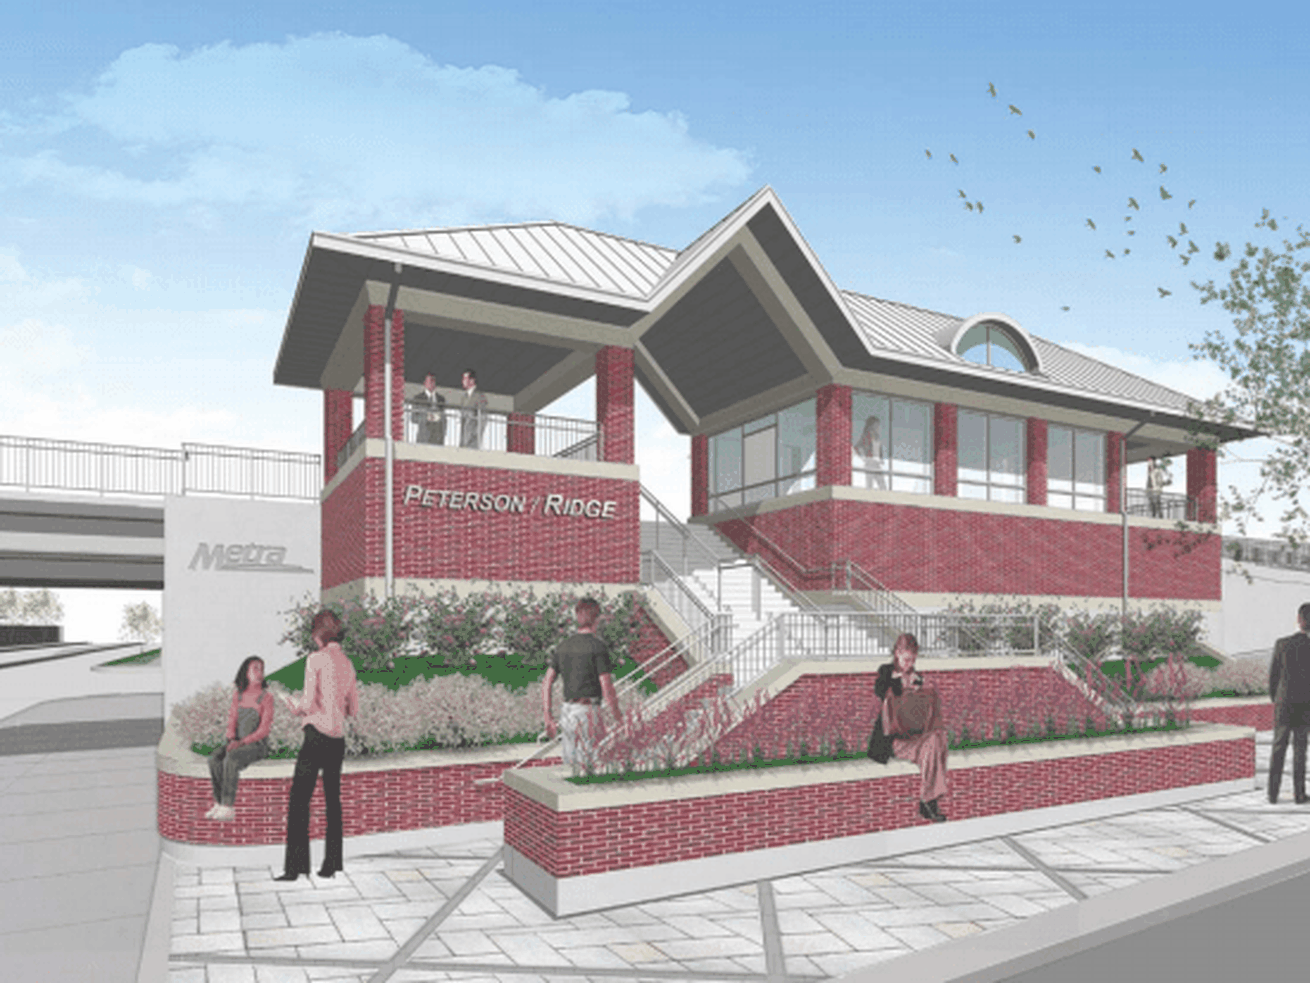 A digital rendering shows a plaza with a landscaped embankment and stairs leading up to a brick station platform waiting area with rooftop.